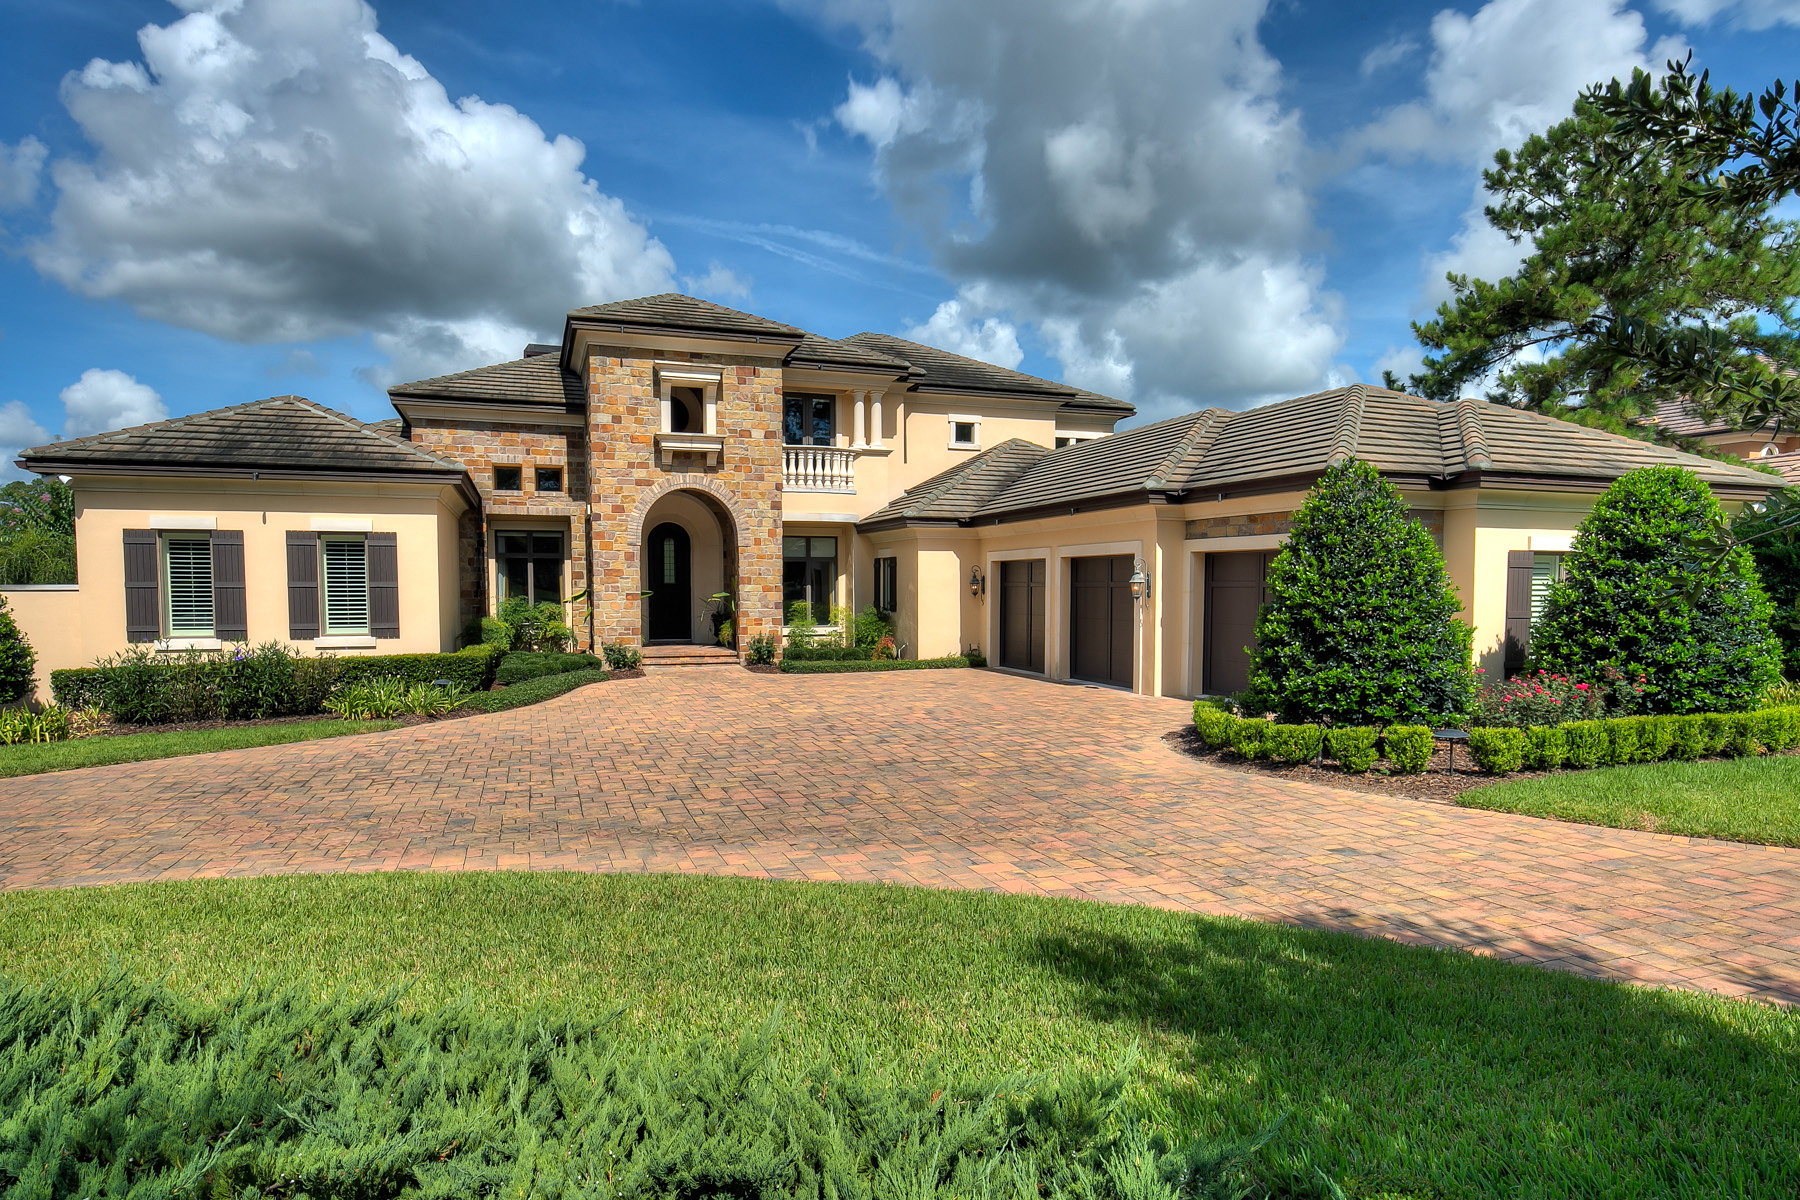 6900 sq ft Ocala Luxury Home - OHP4281